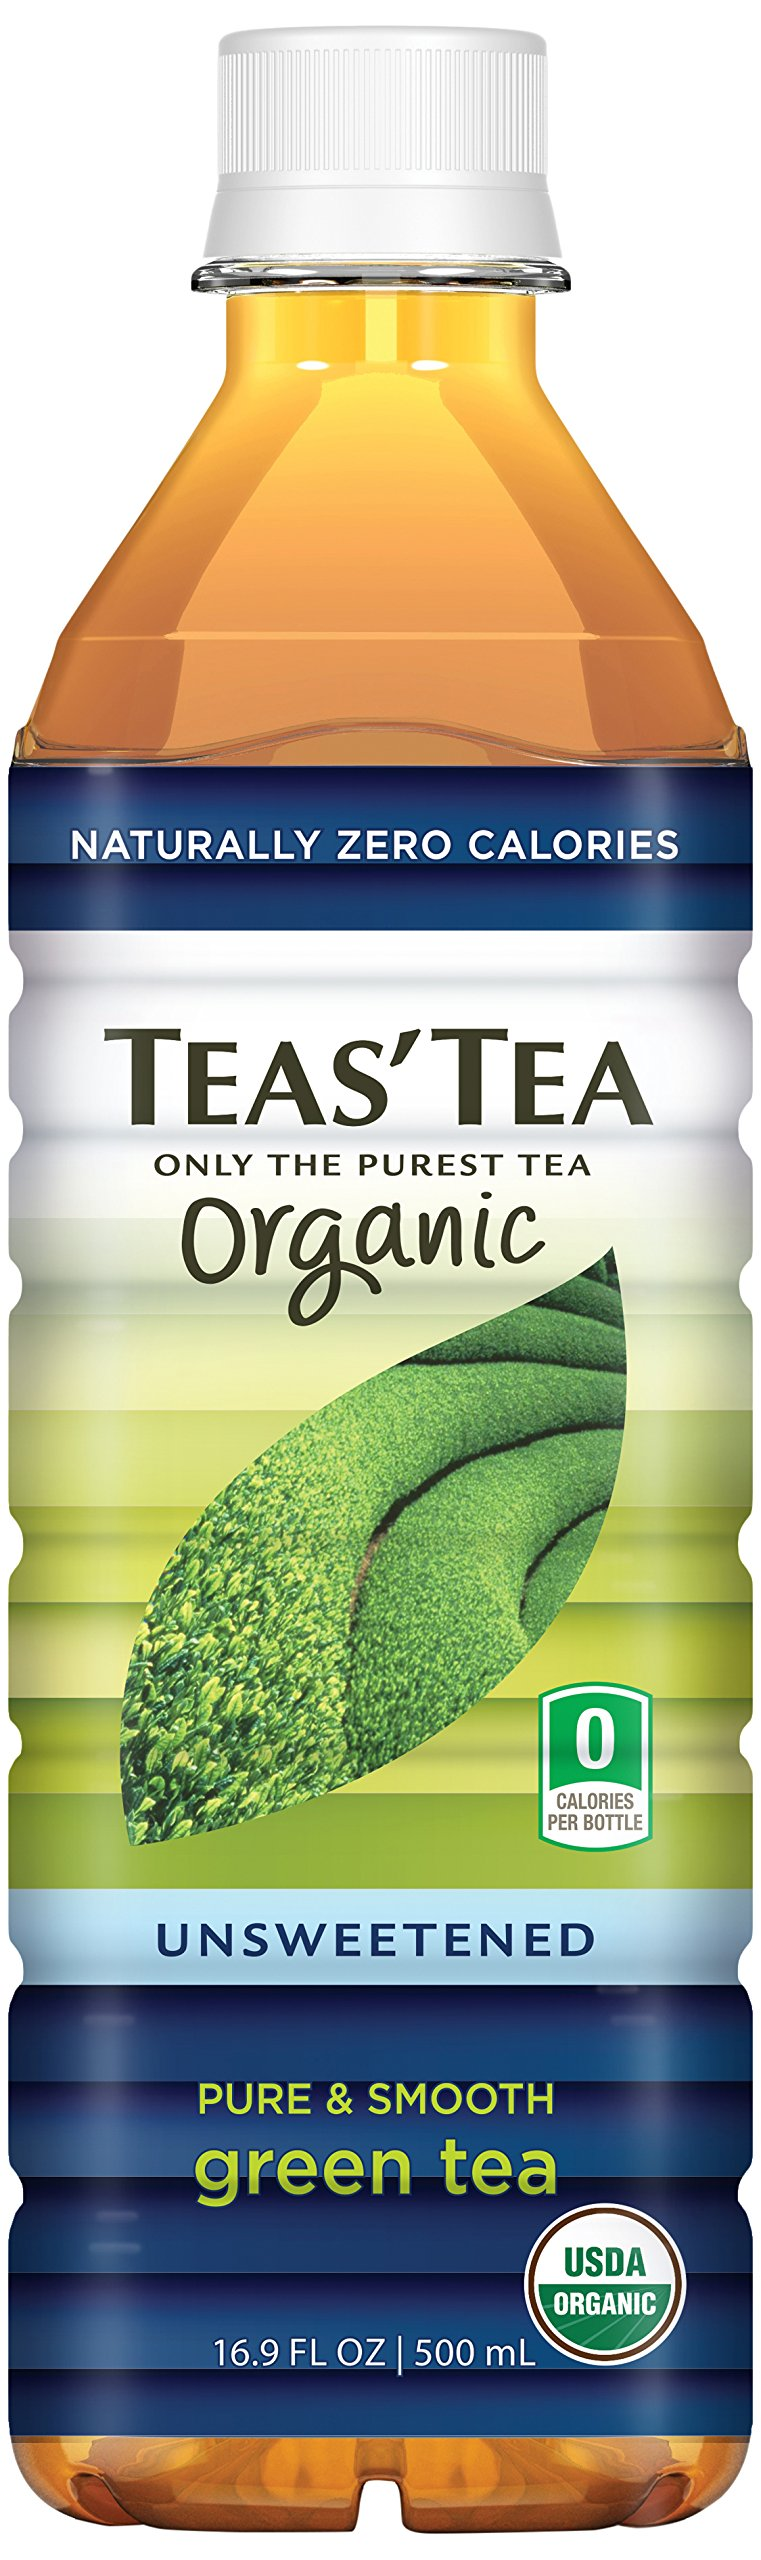 Teas' Tea Unsweetened Pure and Smooth Green Tea, 16.9 Ounce (Pack of 12), Organic, Zero Calories, No Sugars, No Artificial Sweeteners, Antioxidant Rich, High in Vitamin C